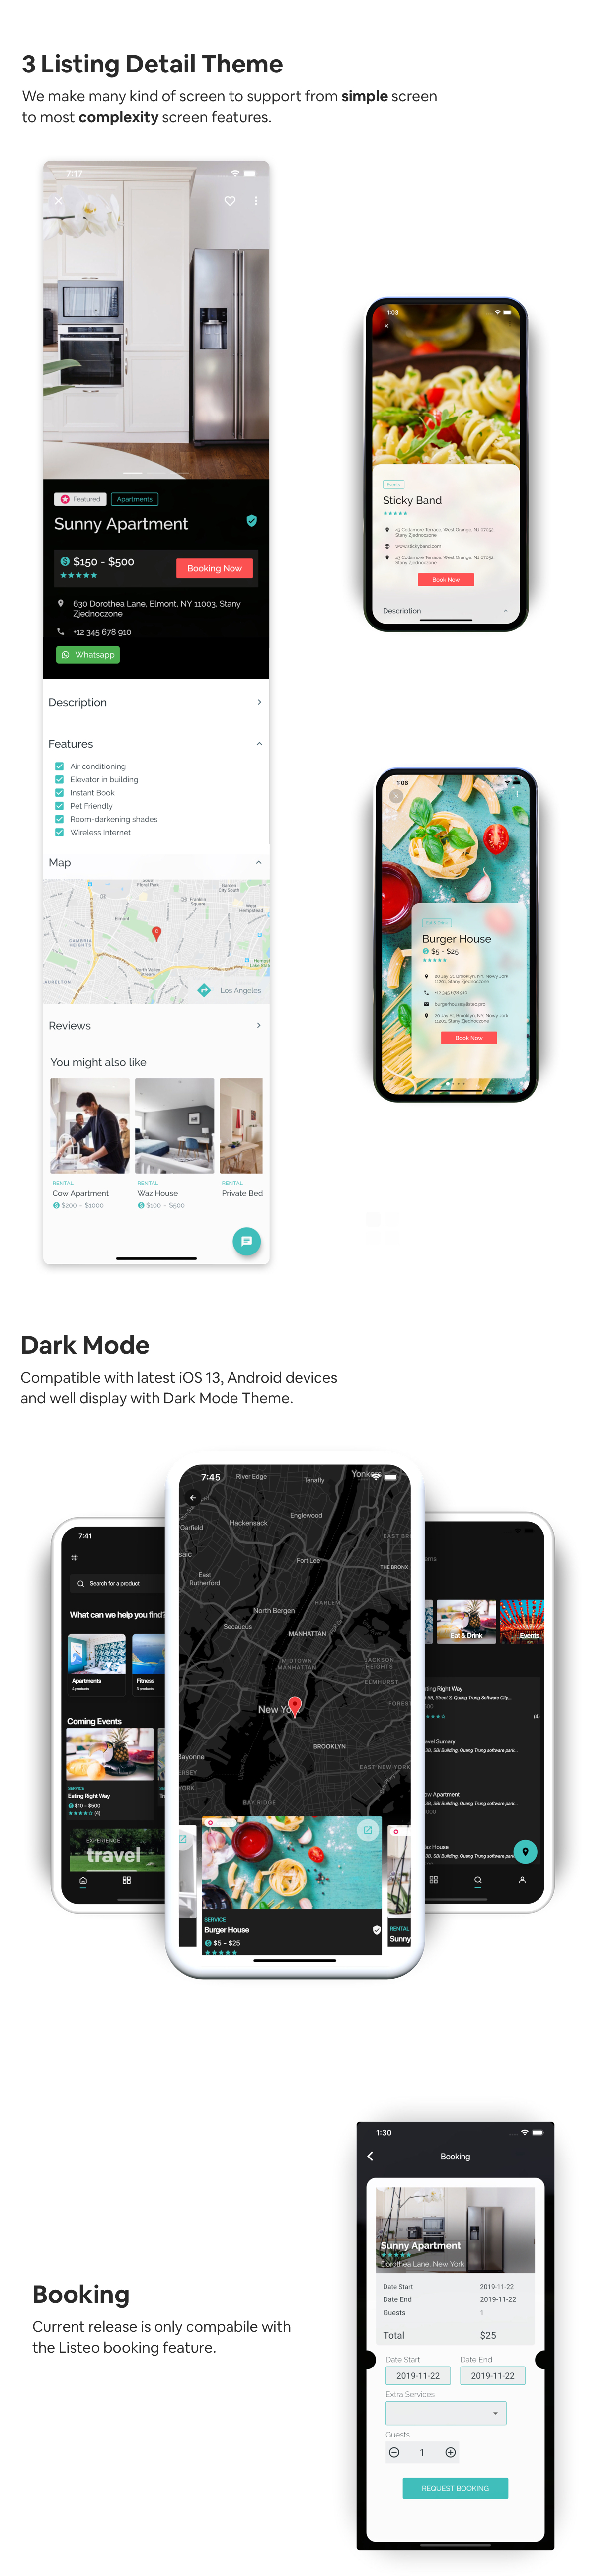 FluxStore Listing - Directory WooCommerce app by Flutter - 4